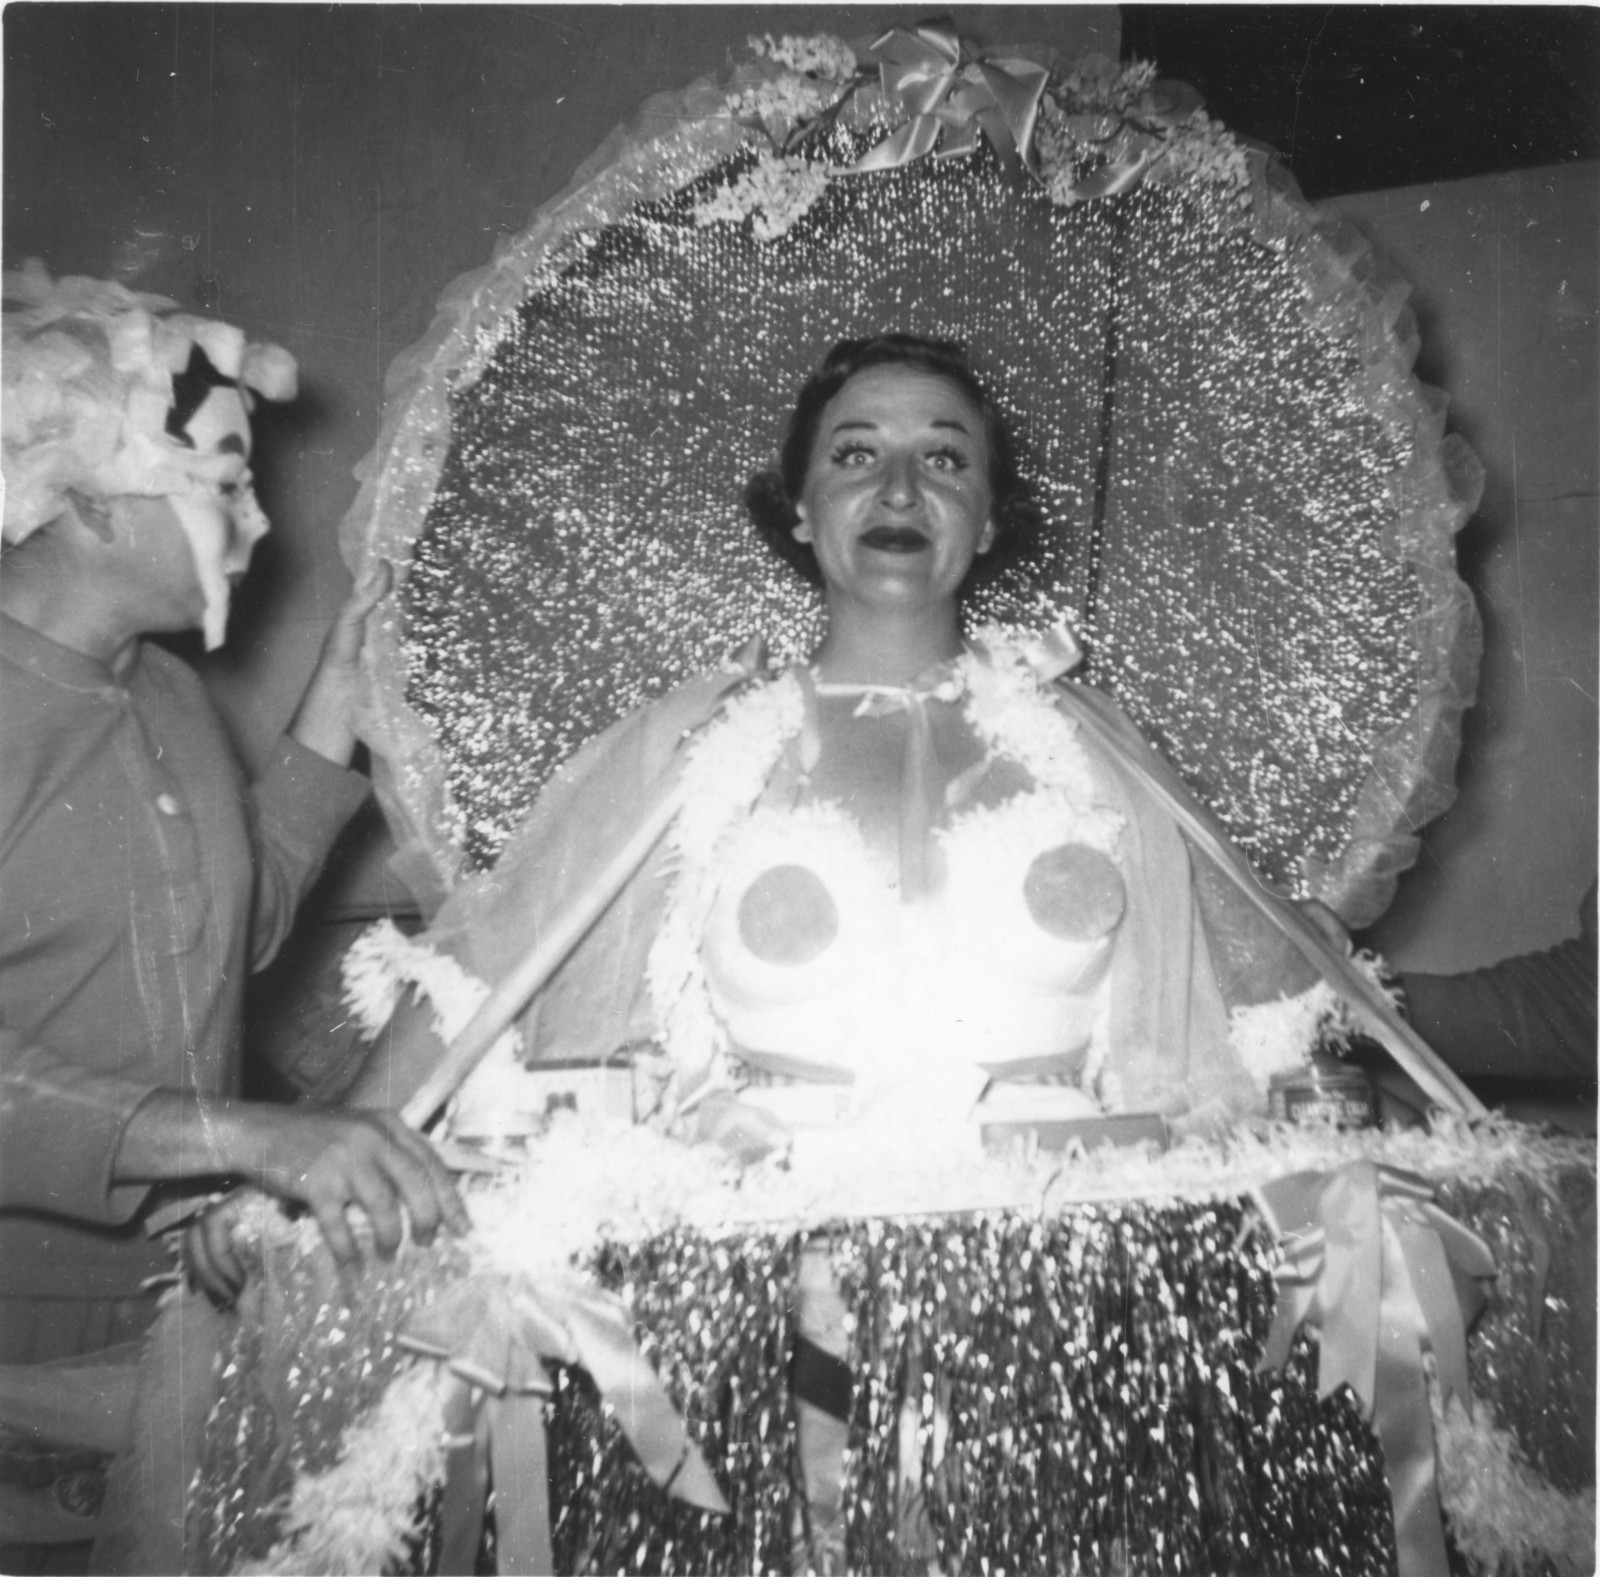 Anne Thompson as the Empress of the Court of Cosmetic Subterfuge,1953. Even in the early years, the costuming was daring. Courtesy of The Playhouse and San Antonio Public Library Texana Collection.